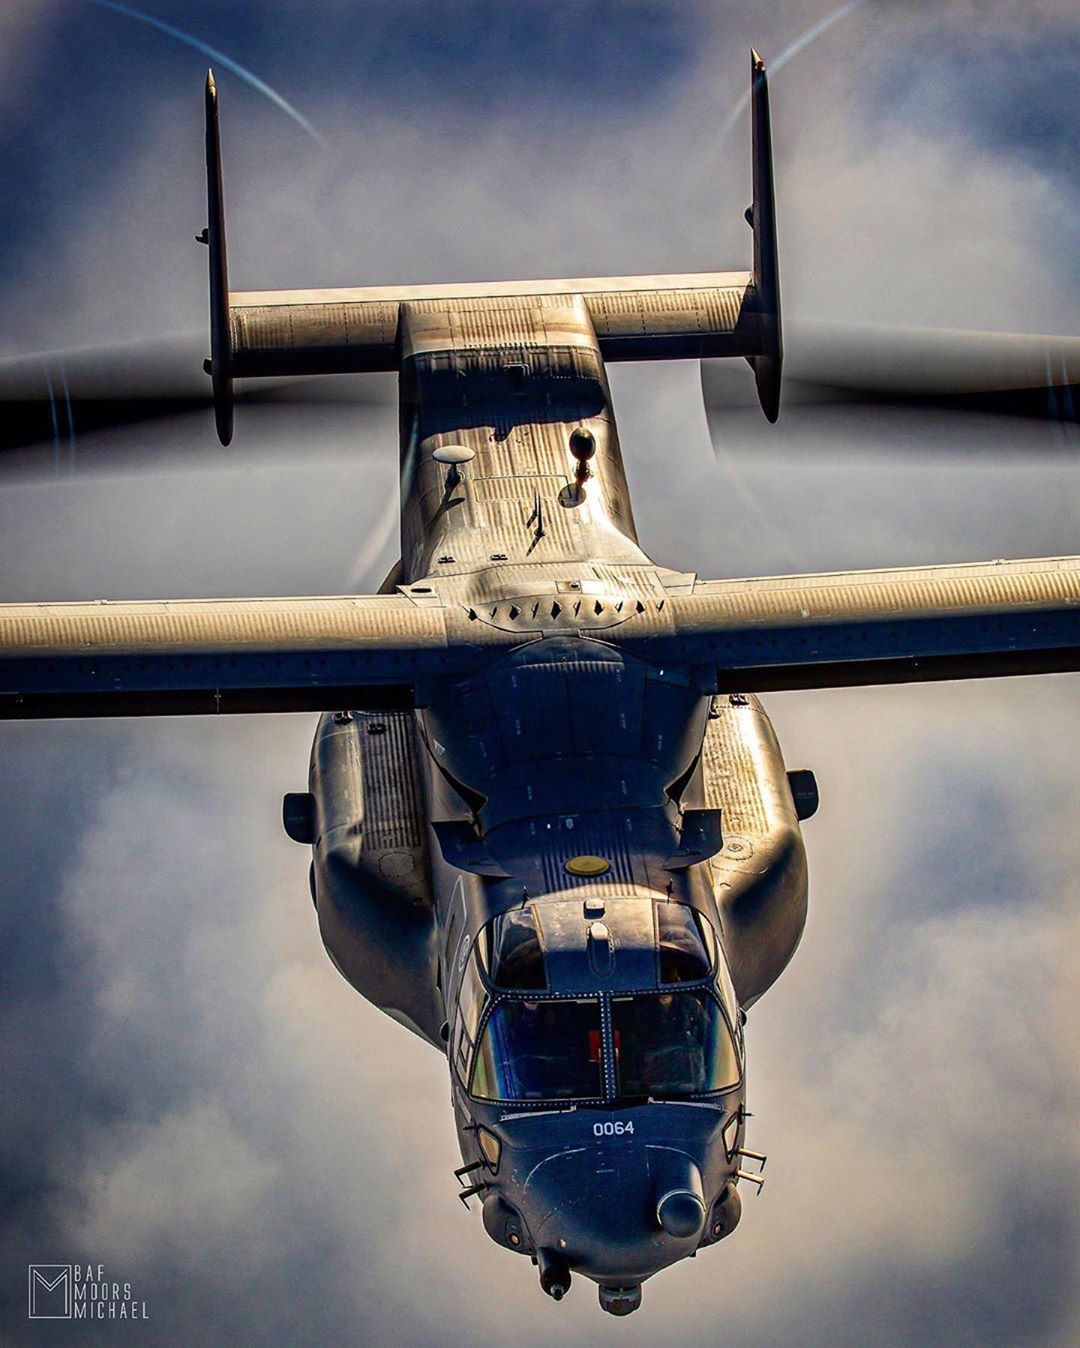 Looking down on a Bell Boeing V-22 Osprey. Photo submitted by Michael Moors (Instagram user @stinger309) using #verticalmag